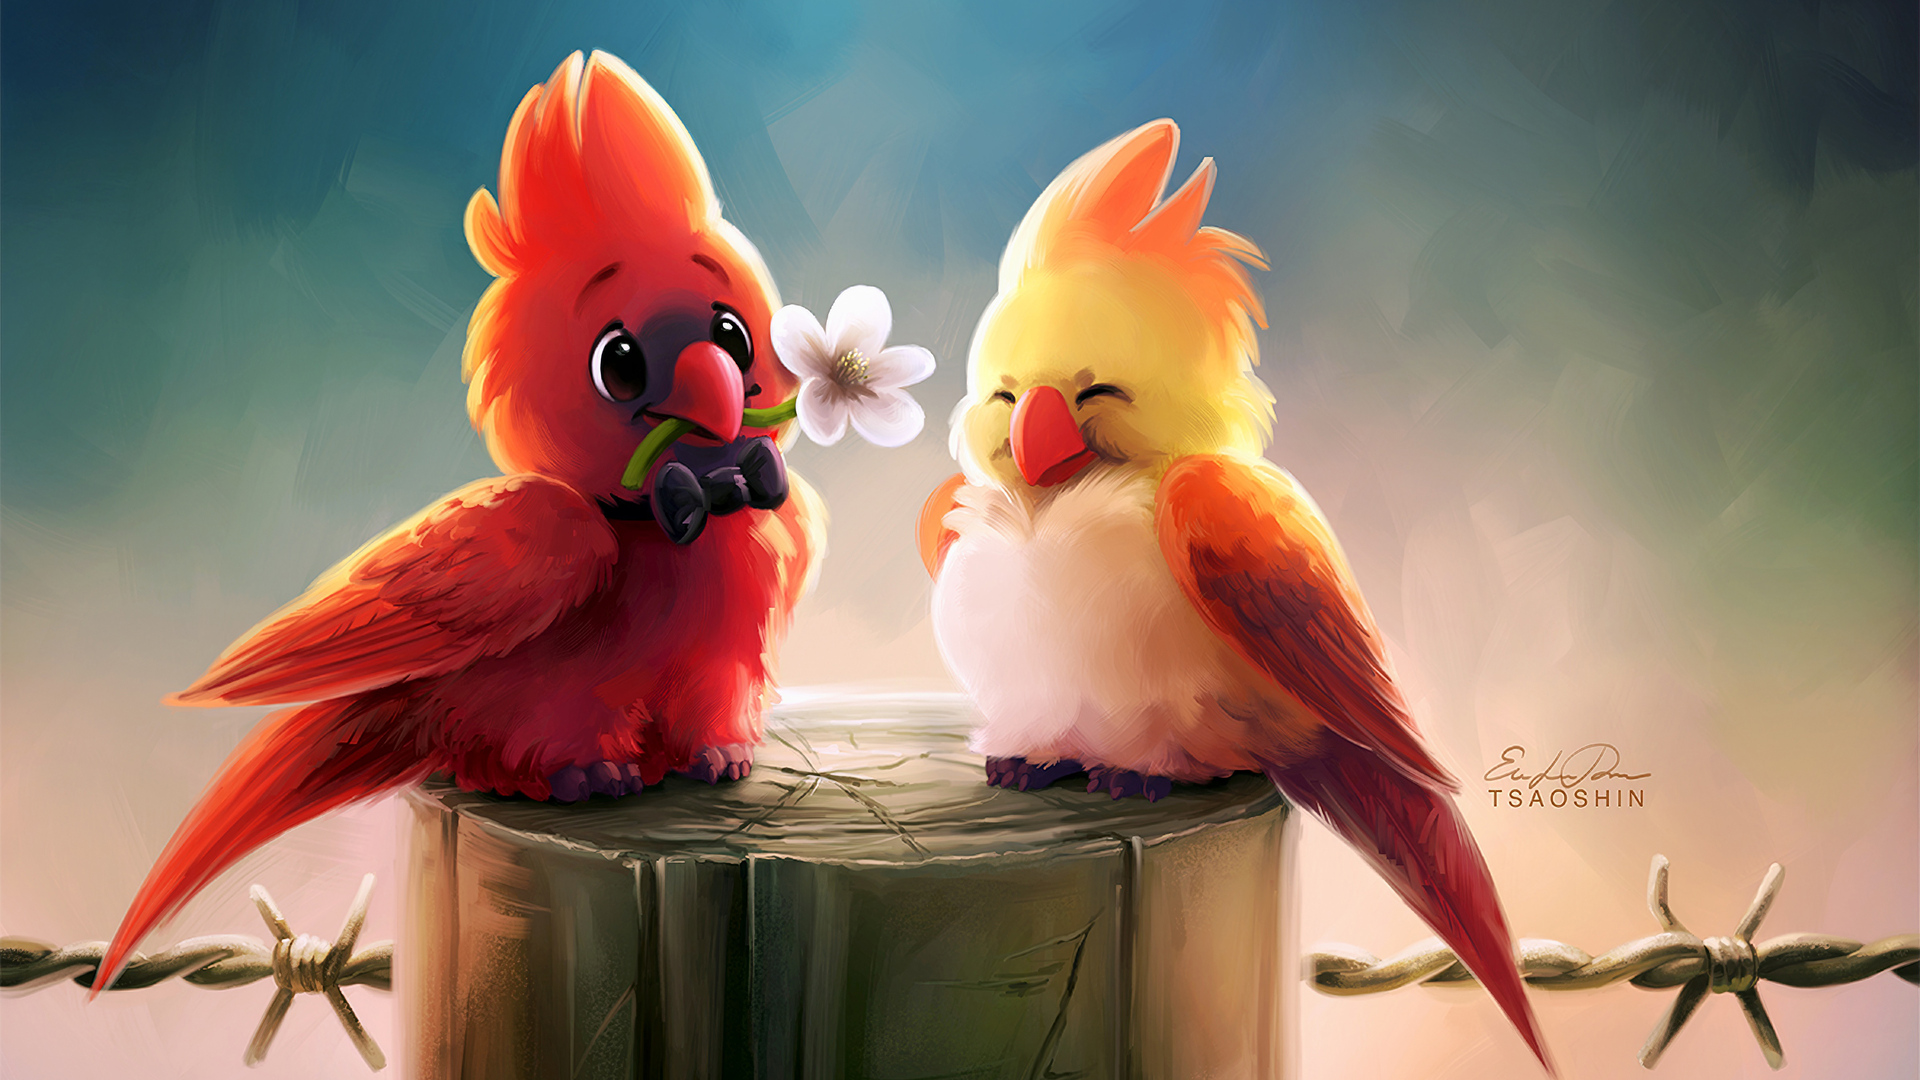 1920x1080 Cute Birds Romance 4k Laptop Full Hd 1080p Hd 4k Wallpapers Images Backgrounds Photos And Pictures